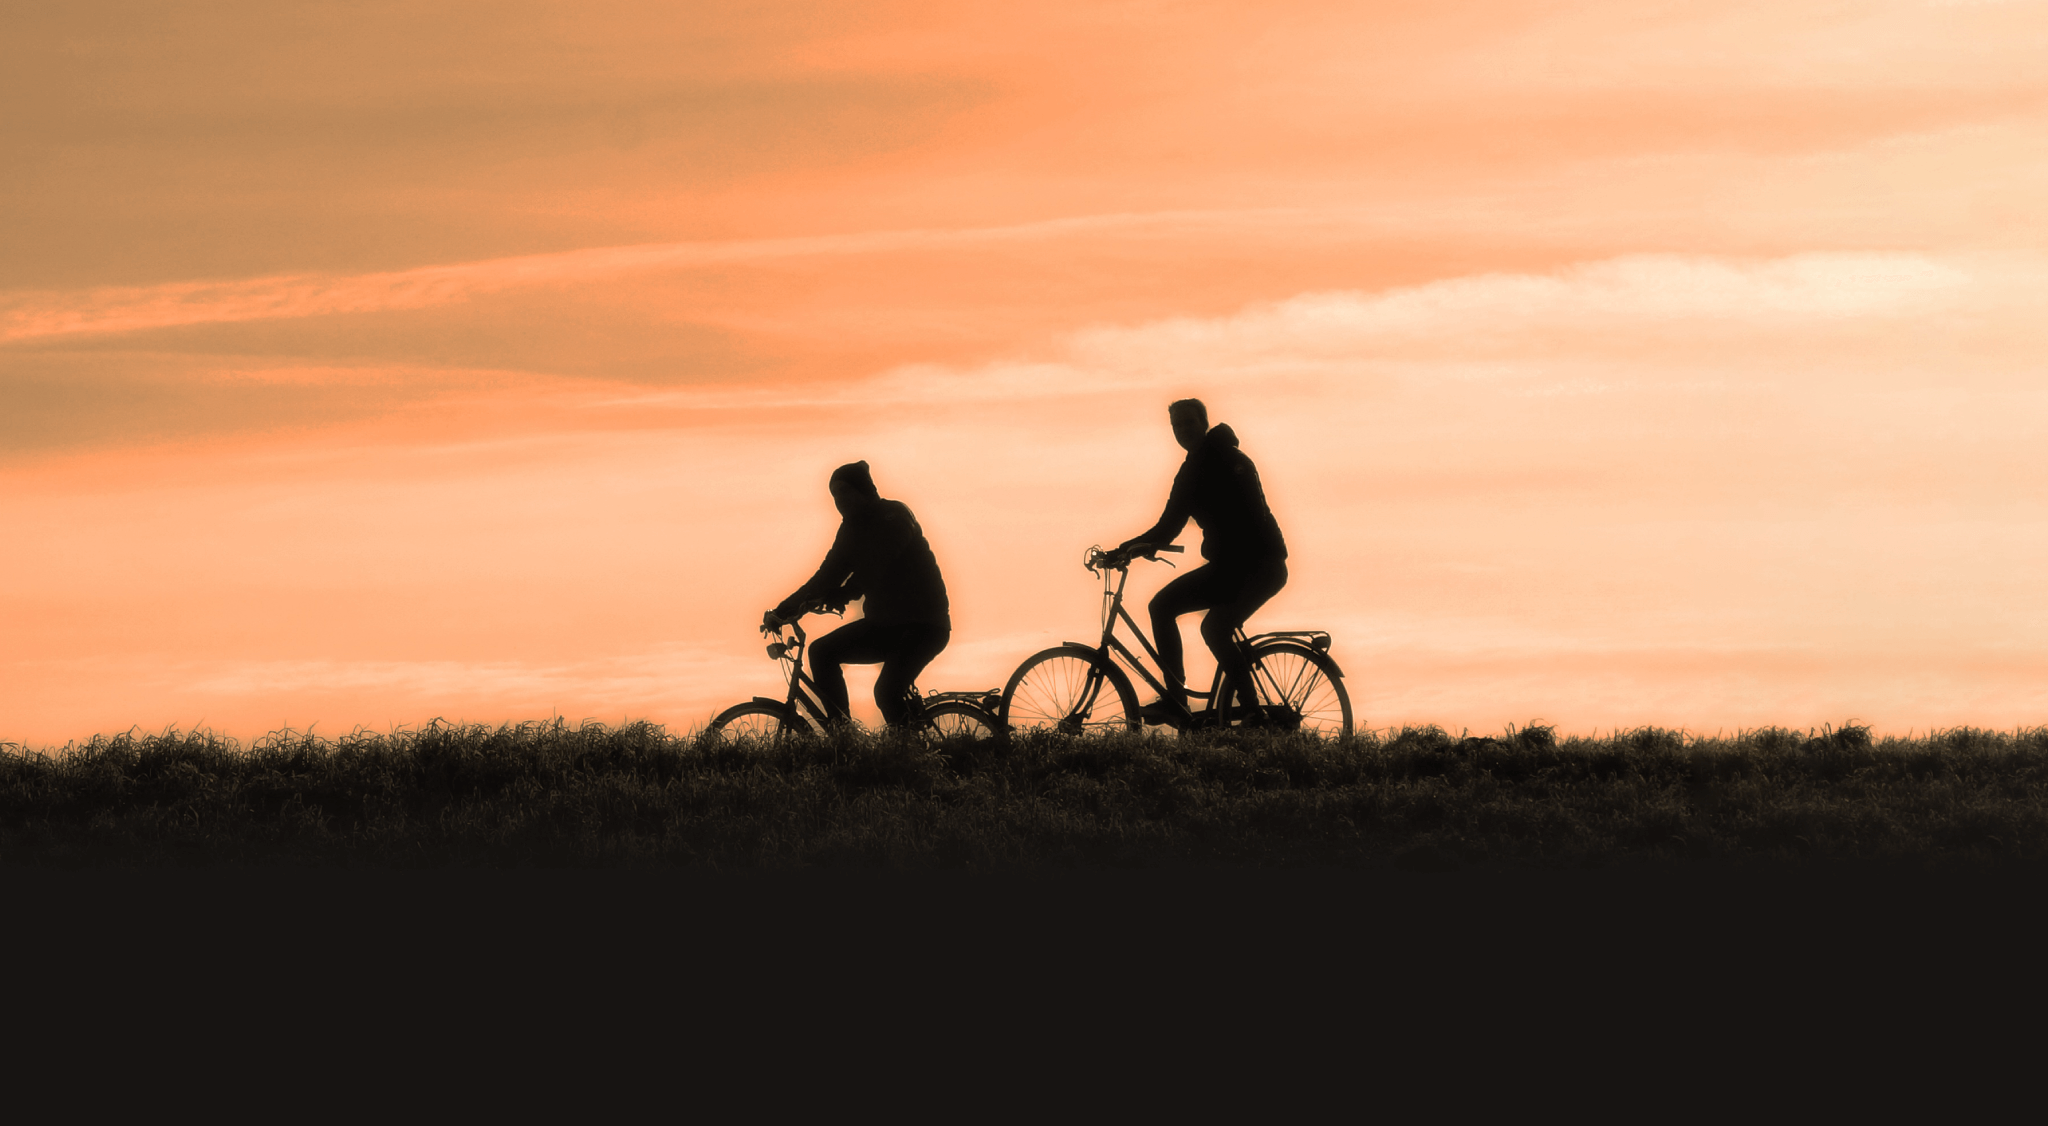 riding bicycles at dusk